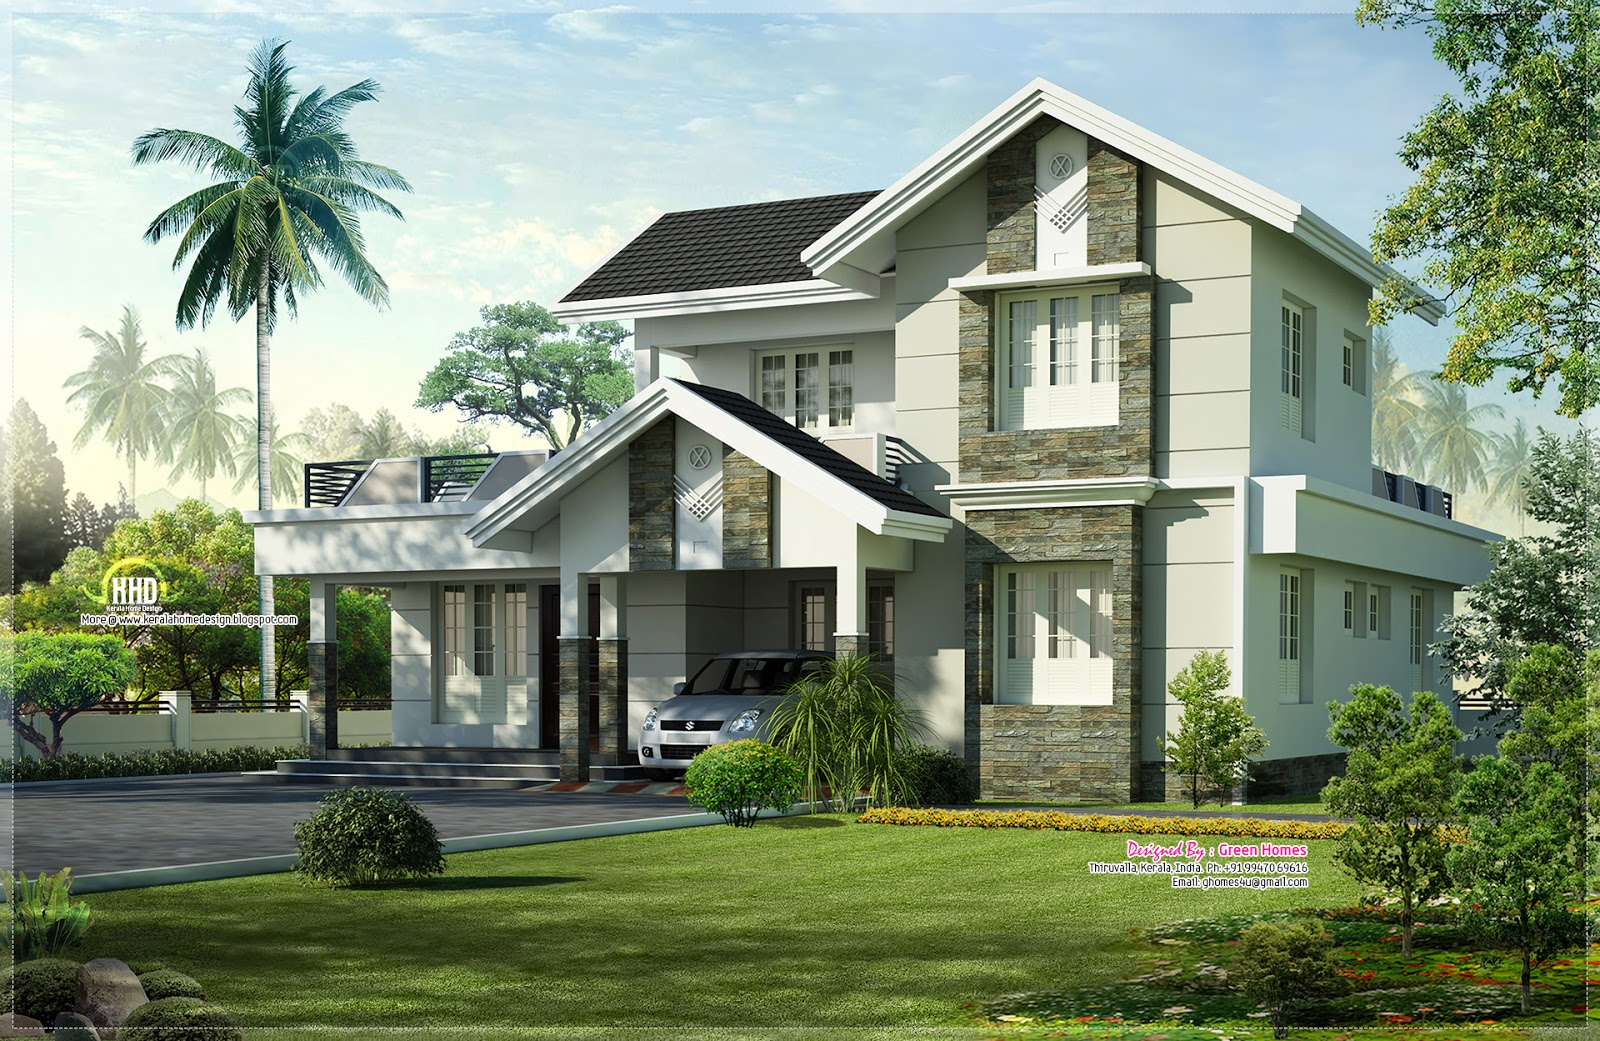 1975 nice home exterior design kerala home for Home design sites